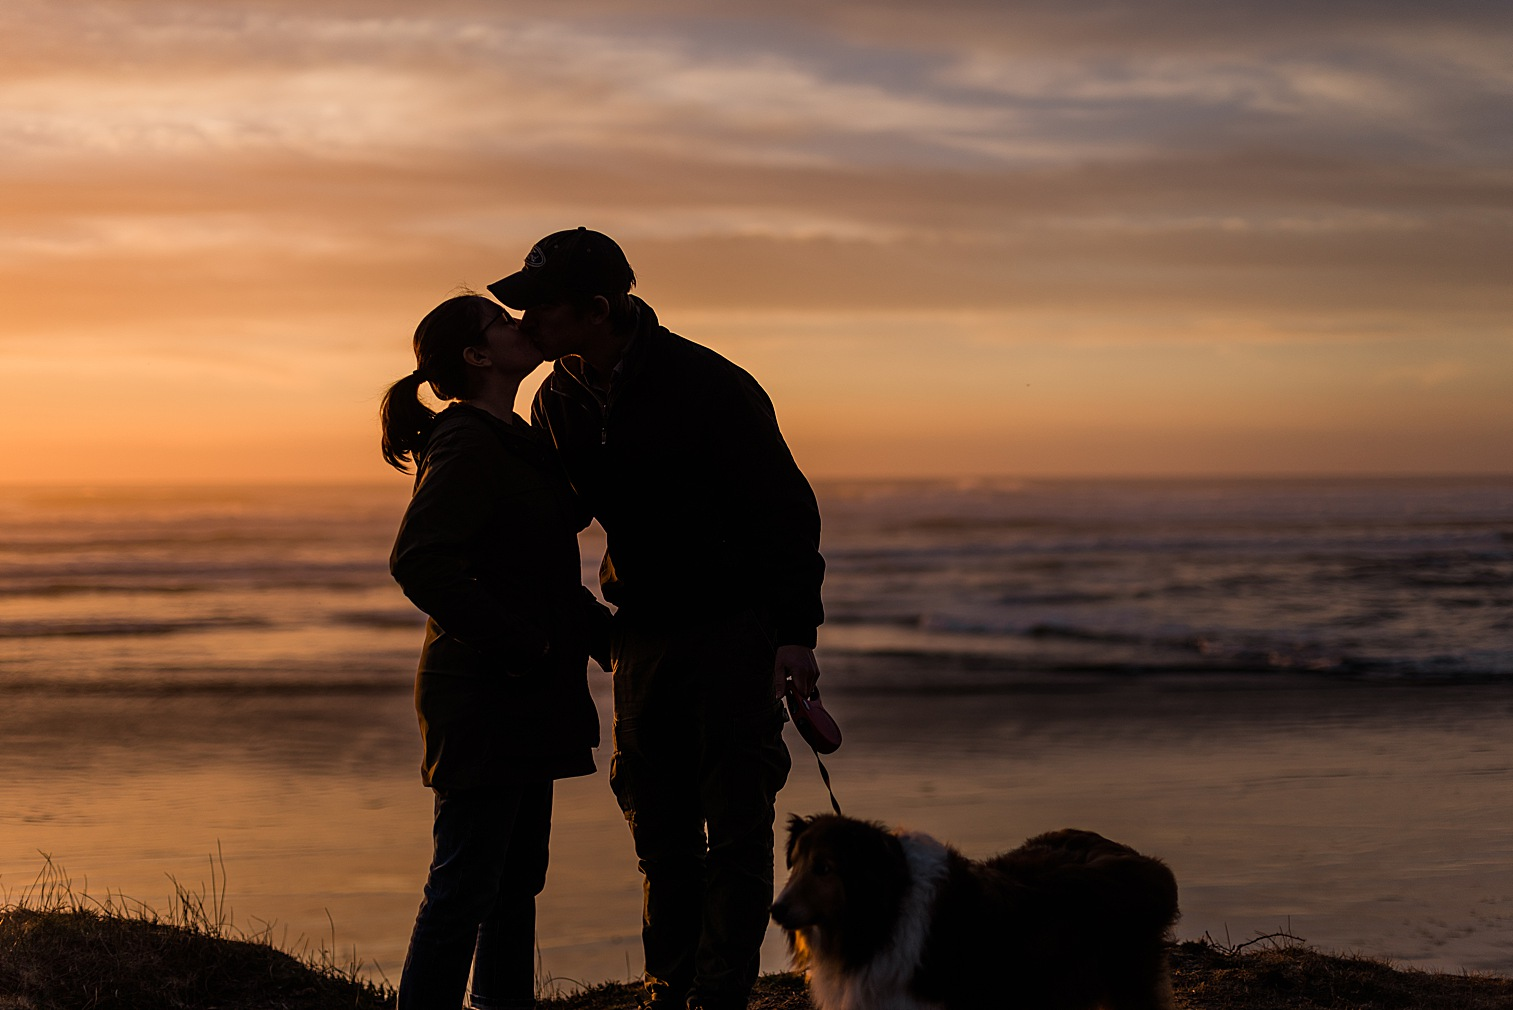 Oregon Coast Elopement Locations & Inspiration - Sunset at Cape Lookout State Park. Image by Forthright Photo